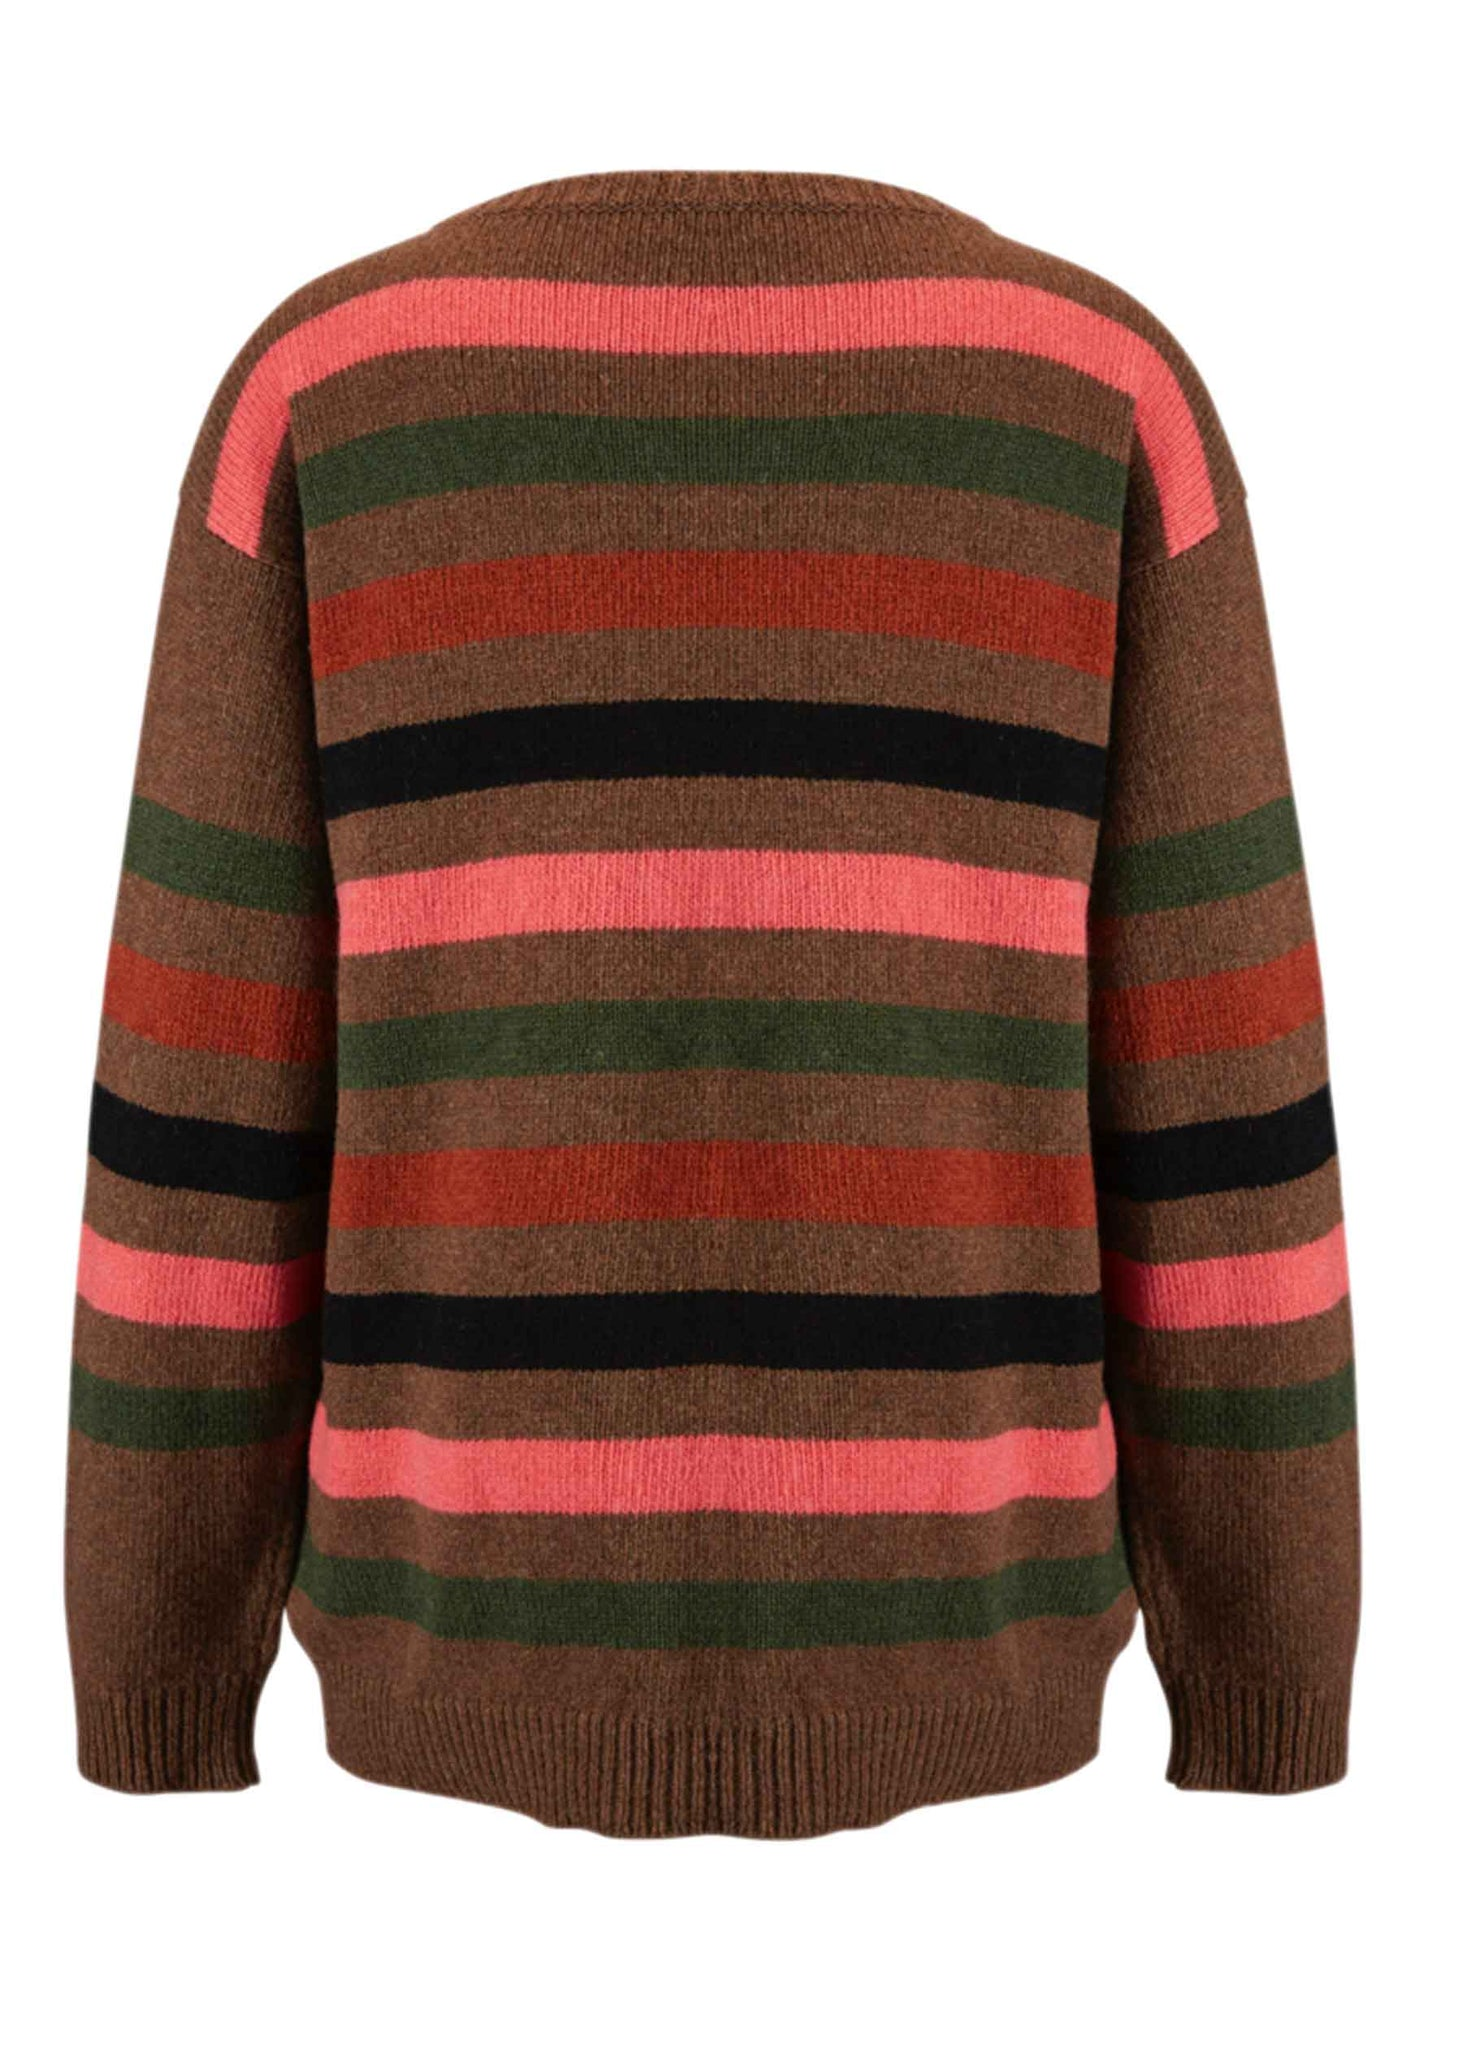 Arizona Trail Stripe Sweater